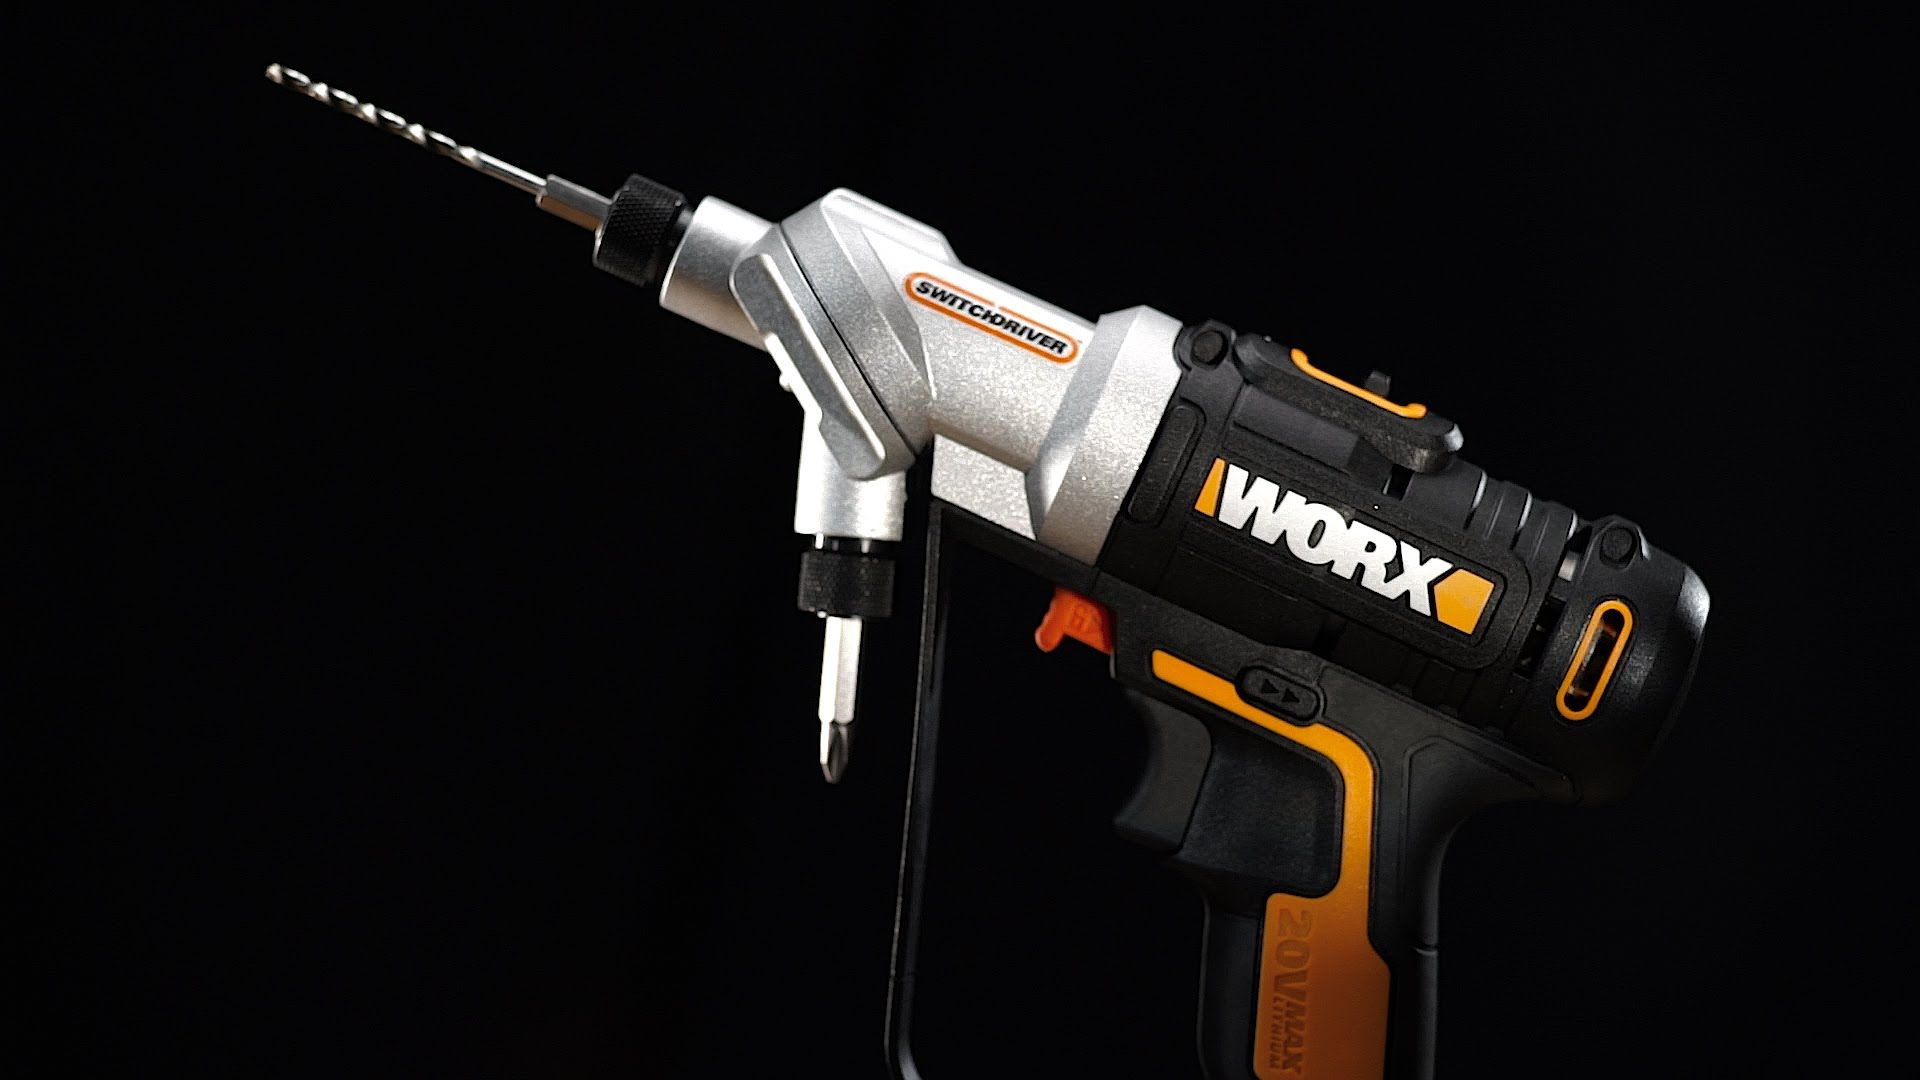 Worx Wx176 Switchdriver Cordless Drill Driver English Www Worx Com Drill Cordless Drill Drill Driver